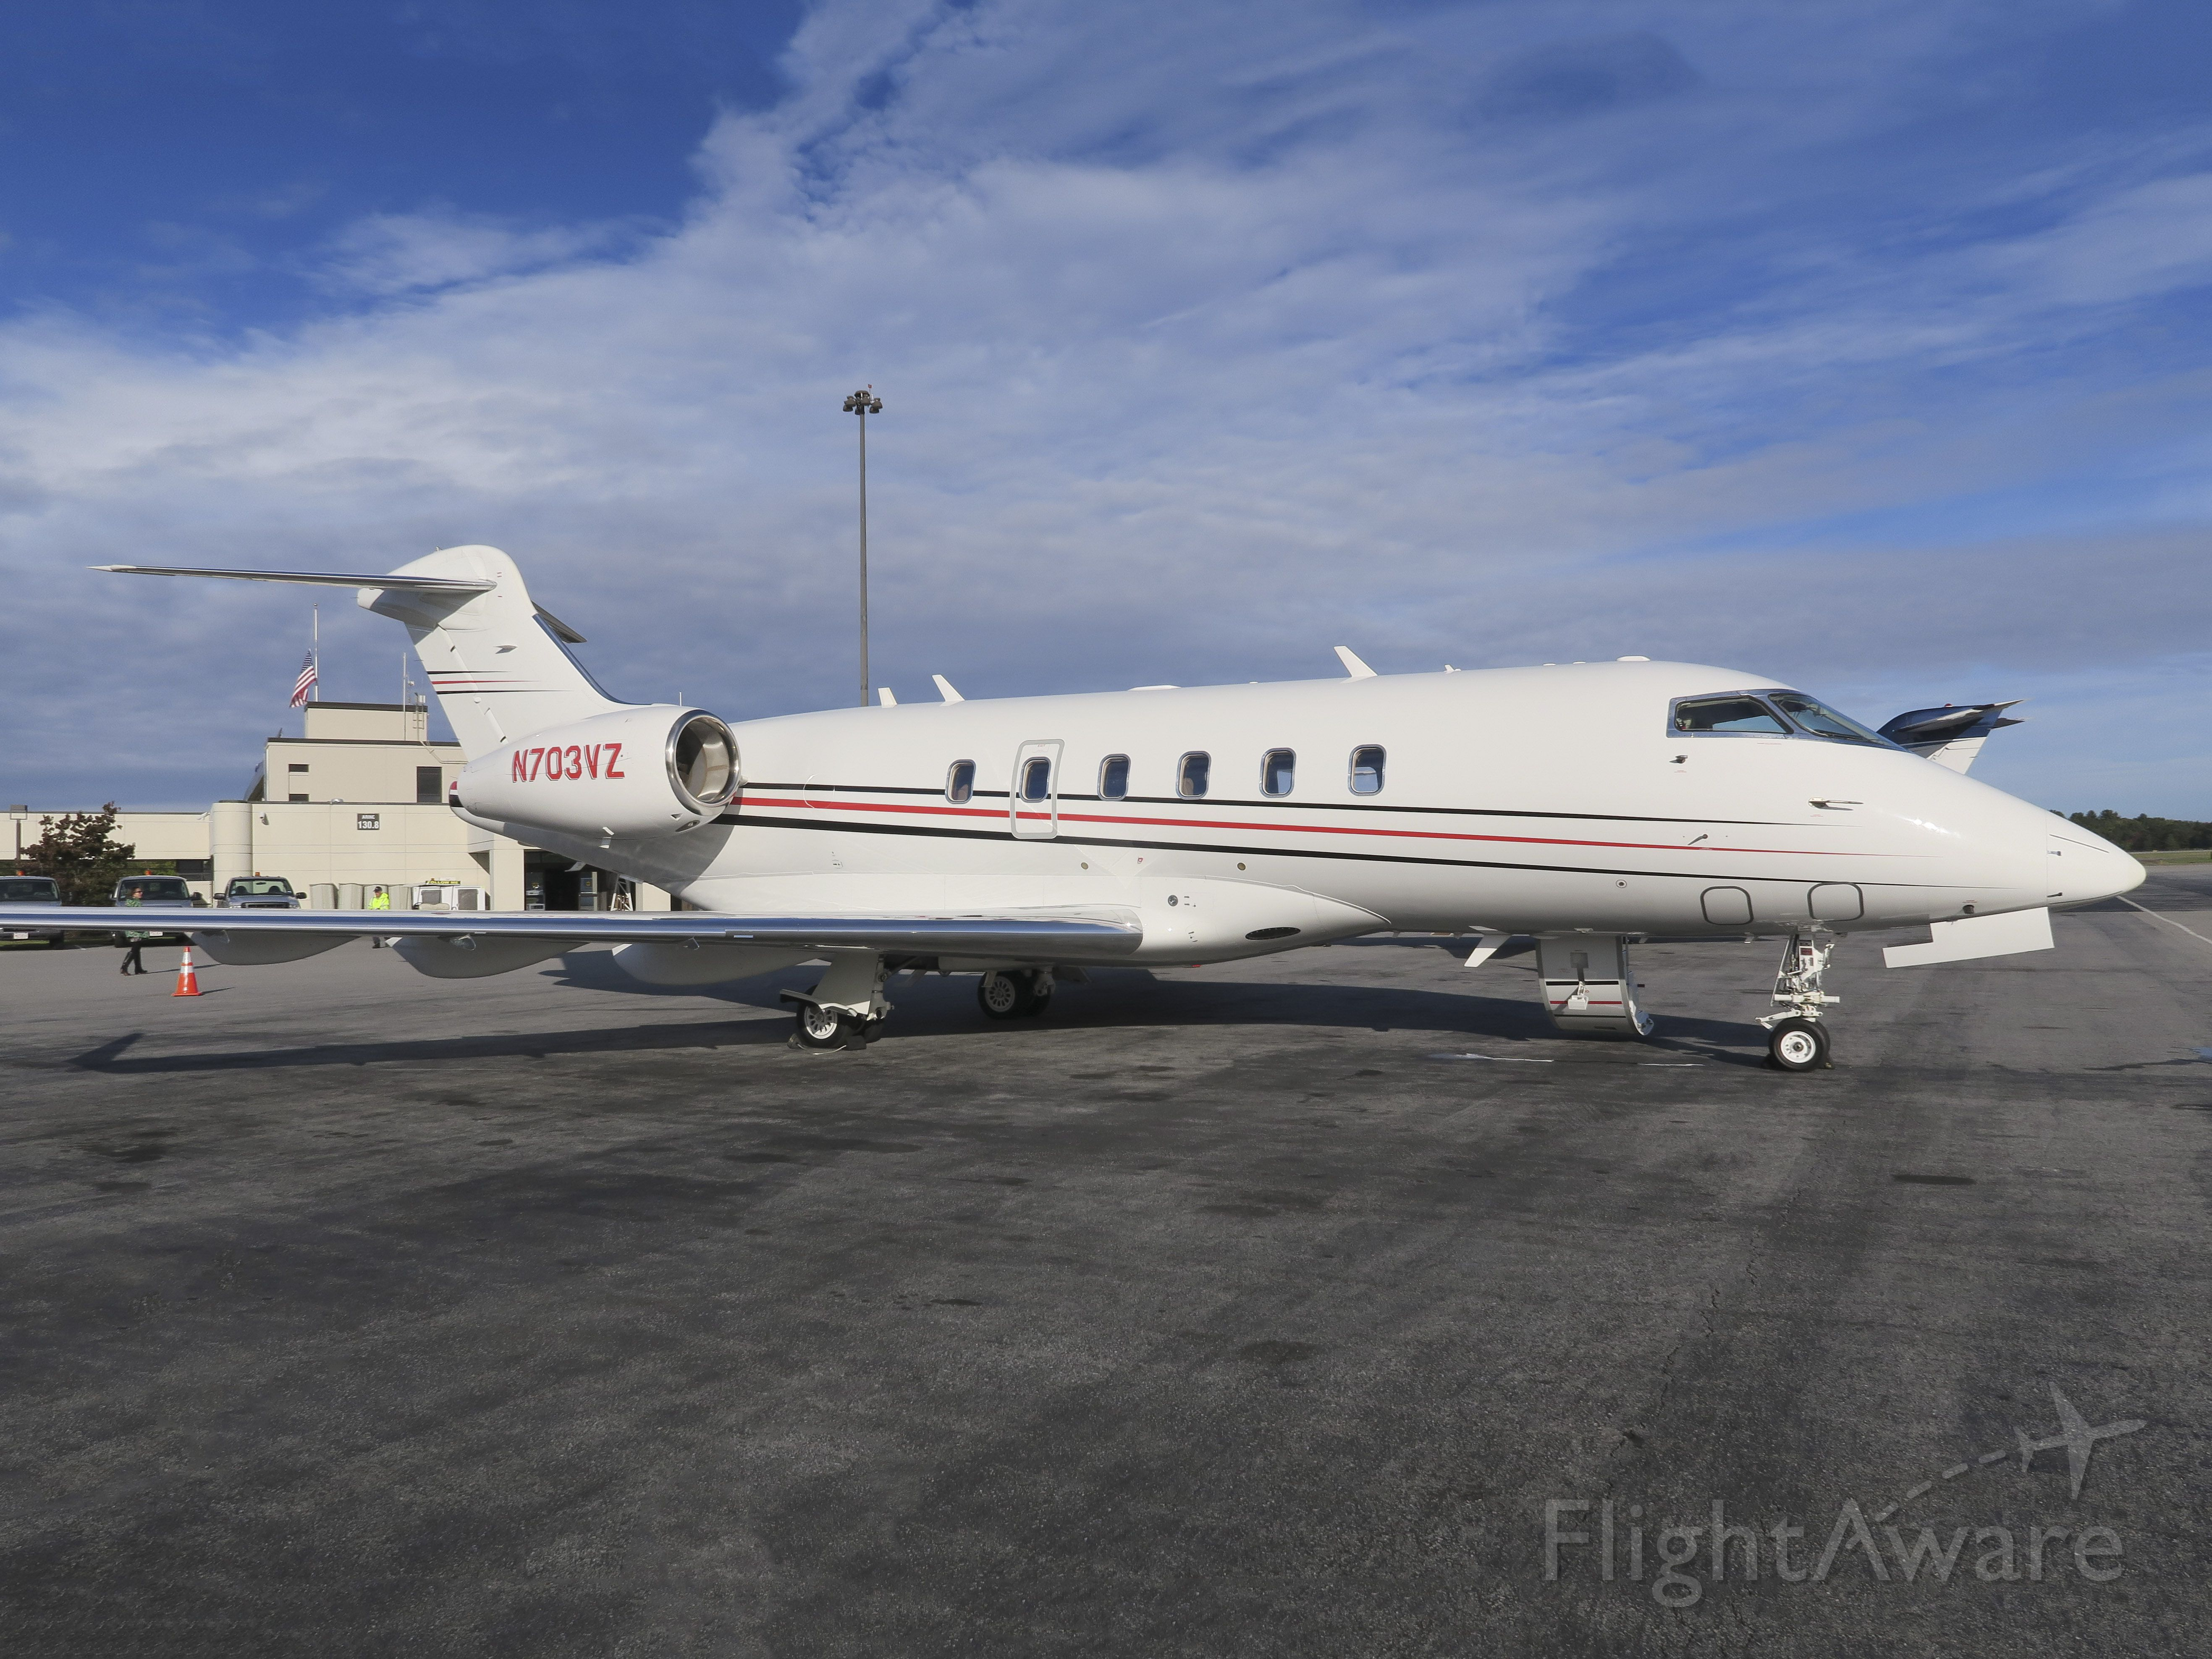 Bombardier Challenger 300 (N703VZ) - No location as per request of the aircraft owner.